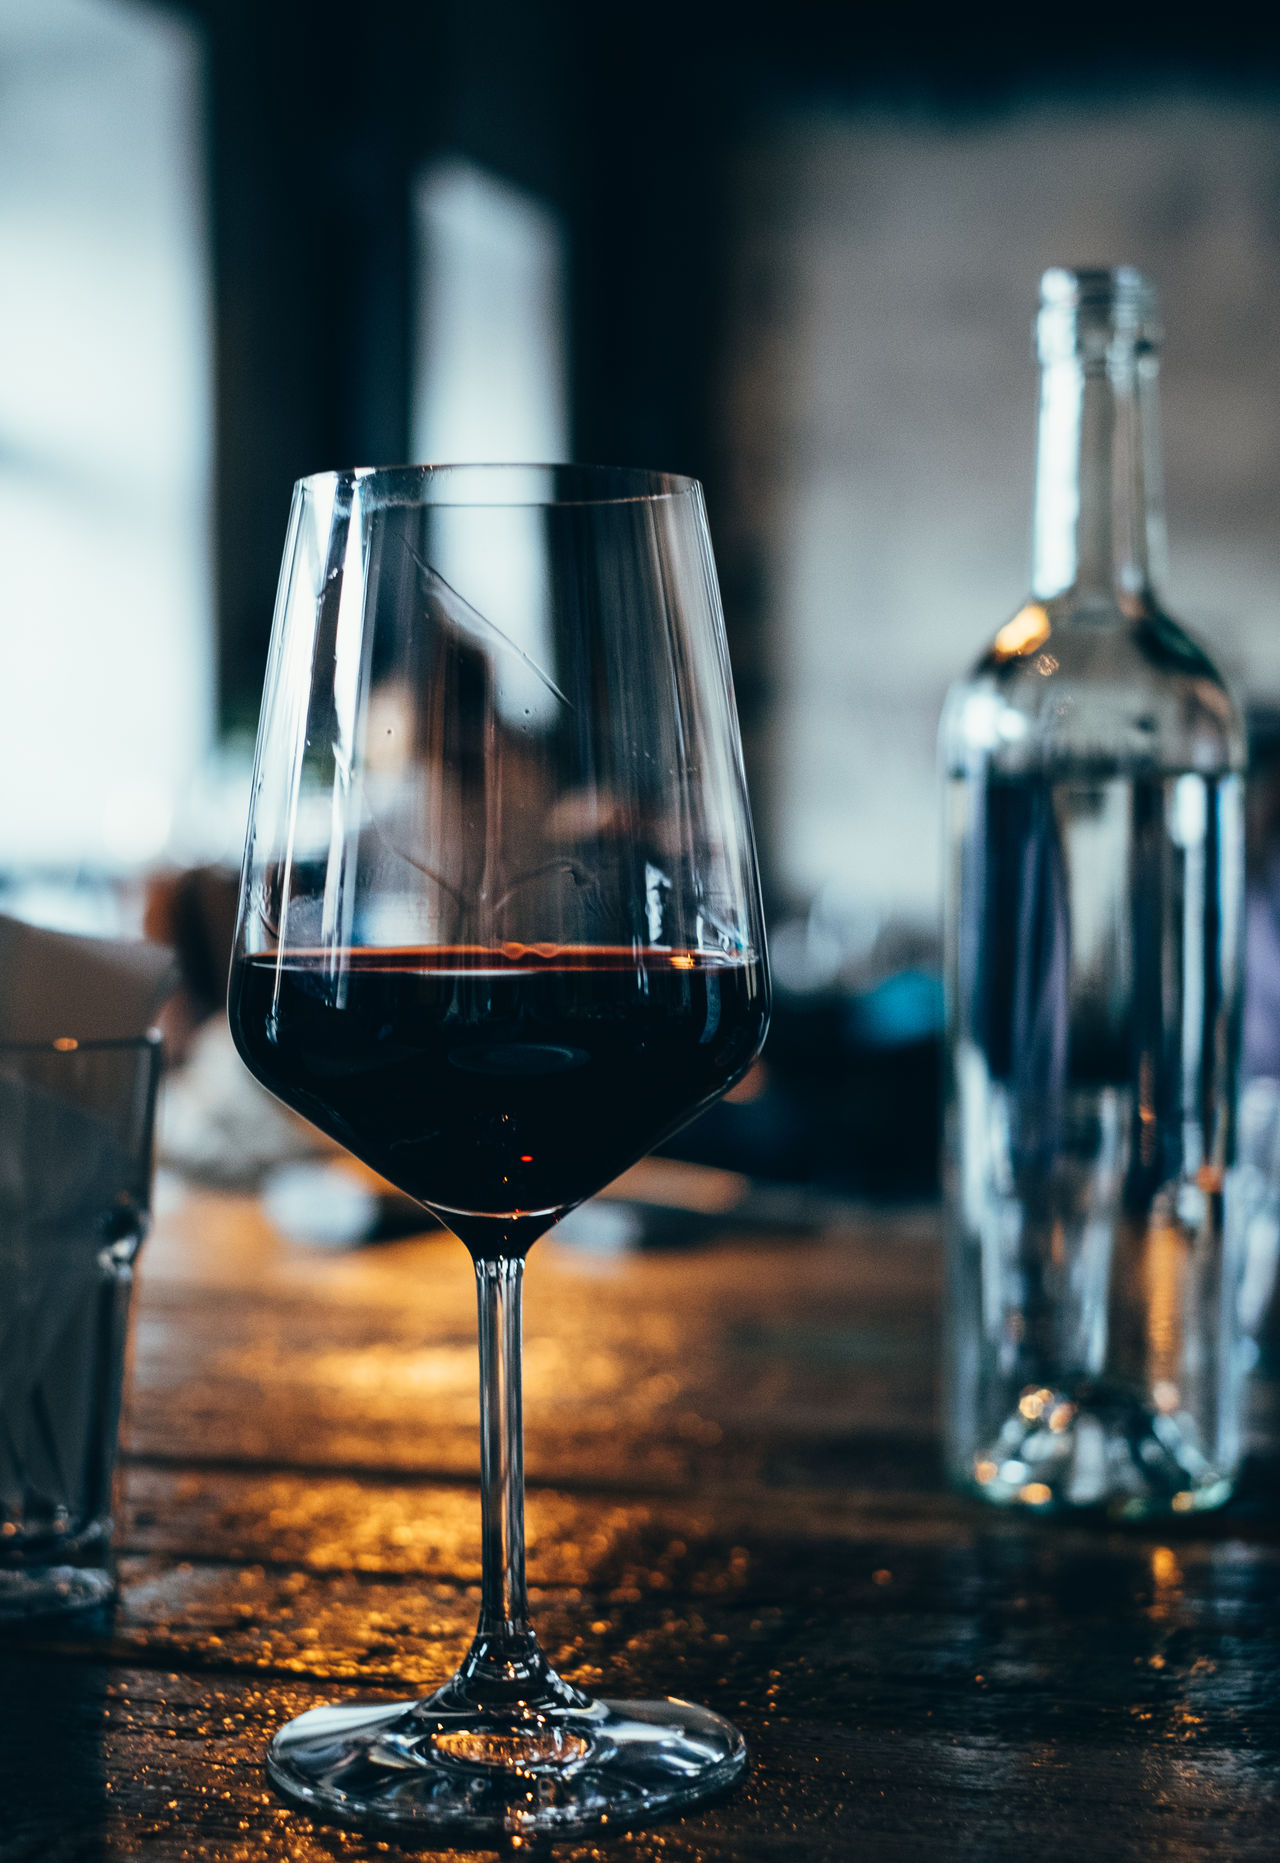 glass of red wine in a bar Alcohol Close-up Day Drink Focus On Foreground Food And Drink Freshness Half Full Indoors  No People Red Wine Table Wine Winebar Wineglass Winetasting